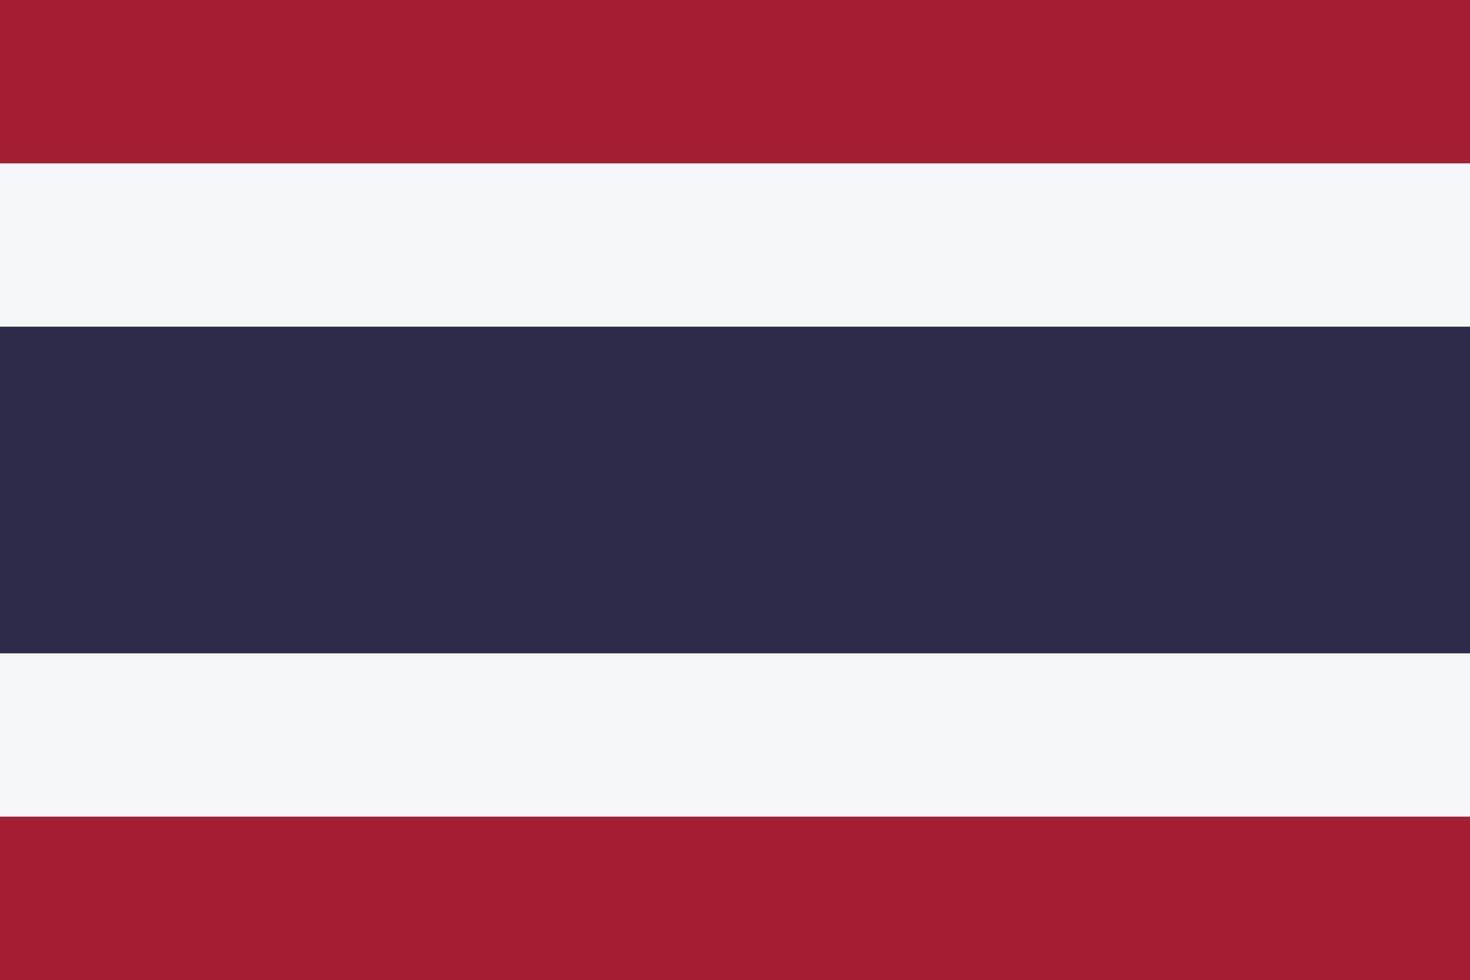 Thailand Flag Vektor isolieren Banner Druck Illustration